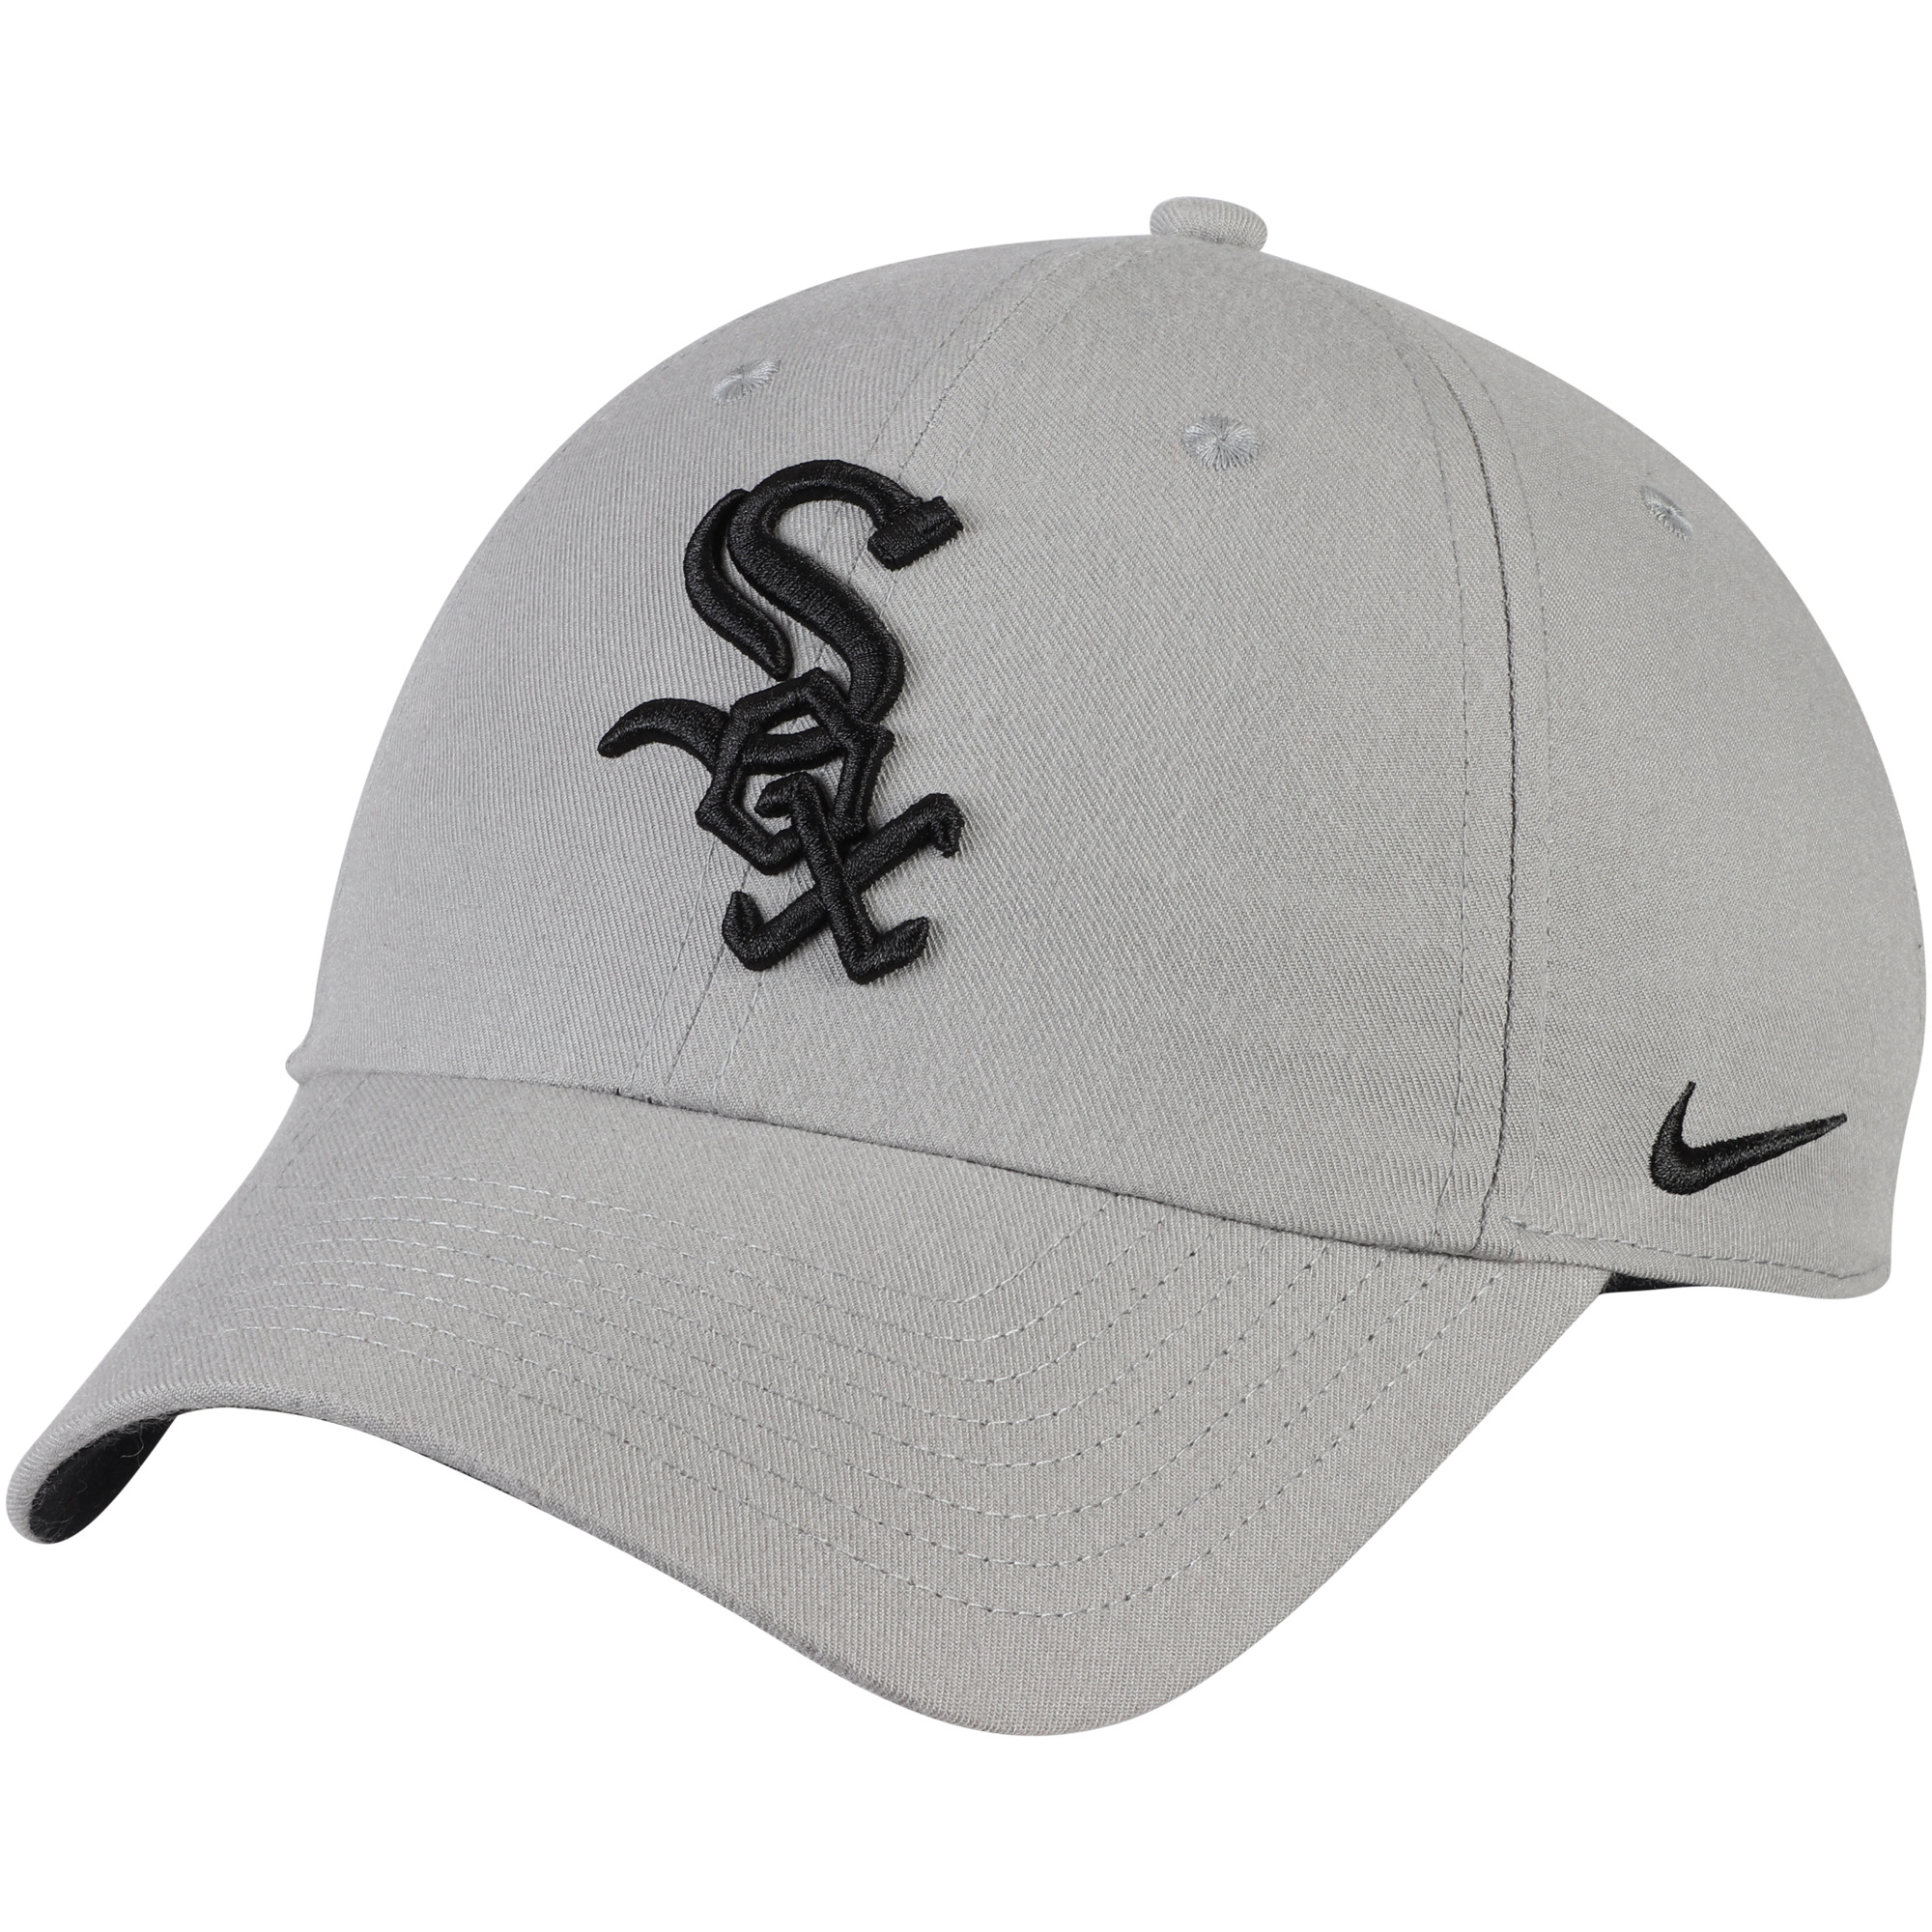 check out 3bdbf eb974 ... france product image chicago white sox nike heritage 86 stadium  performance adjustable hat gray osfa 4407e